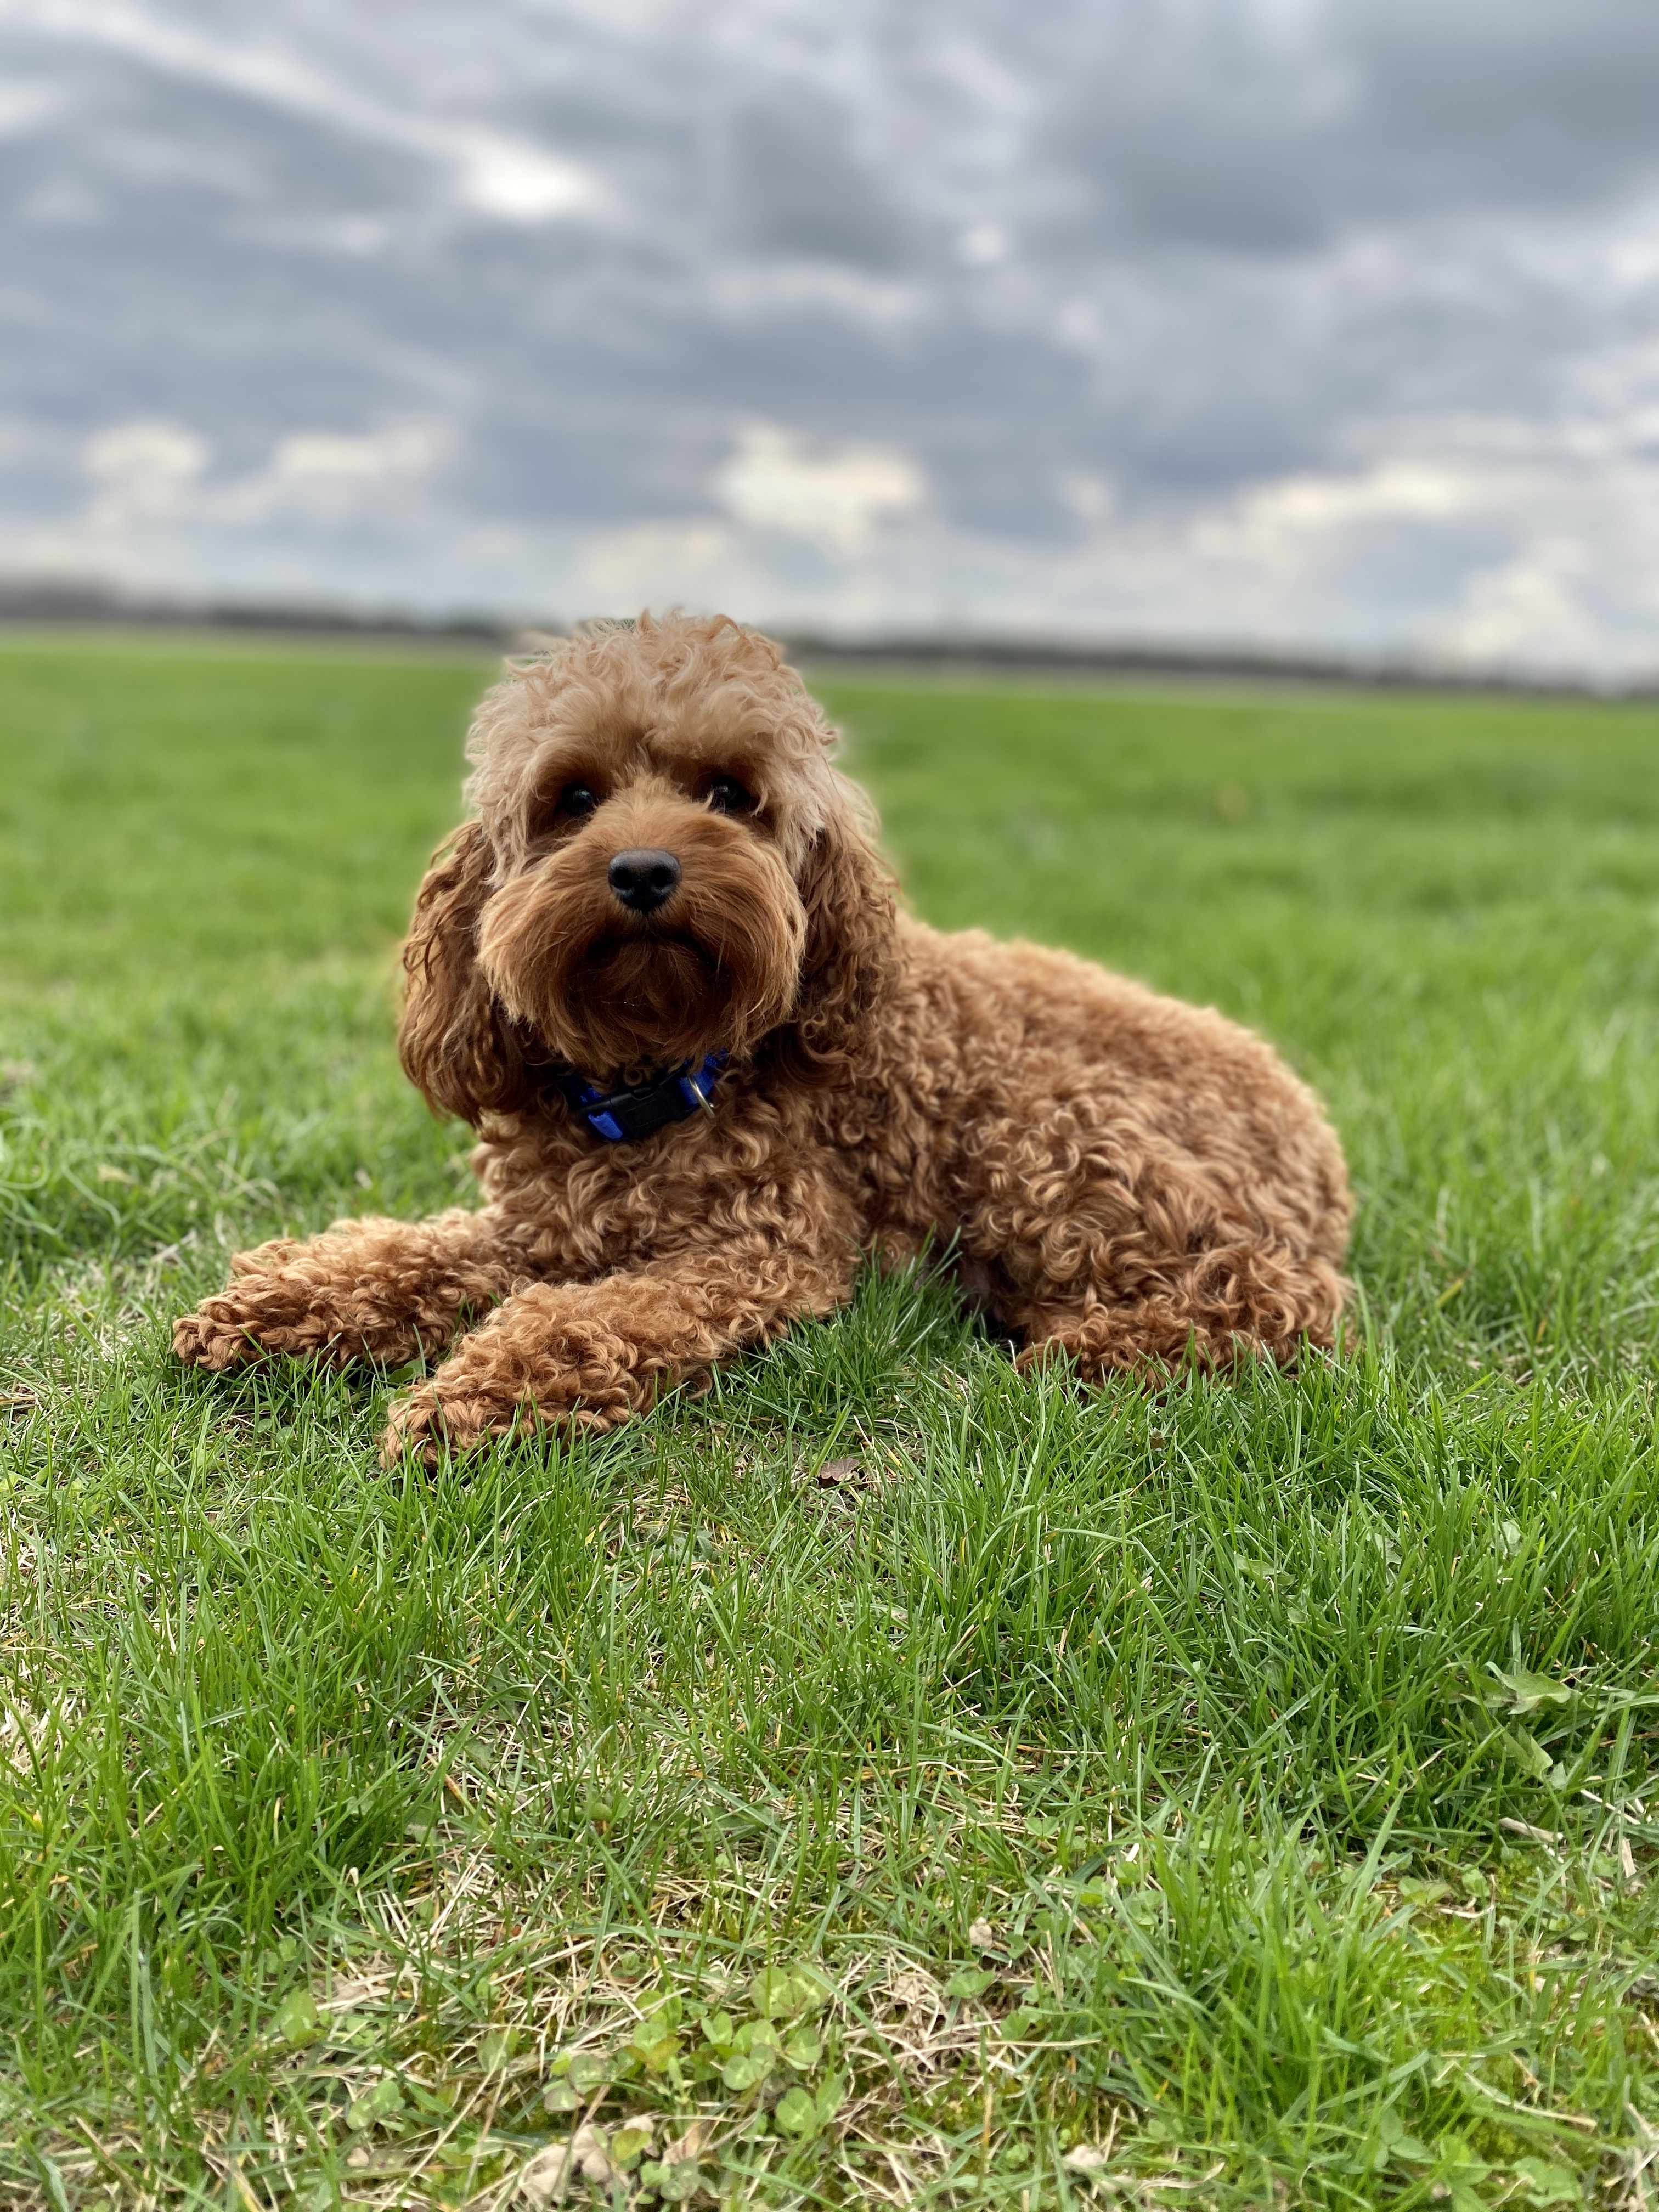 Barbecuing with your Dog | Ashford Manor Labradoodles